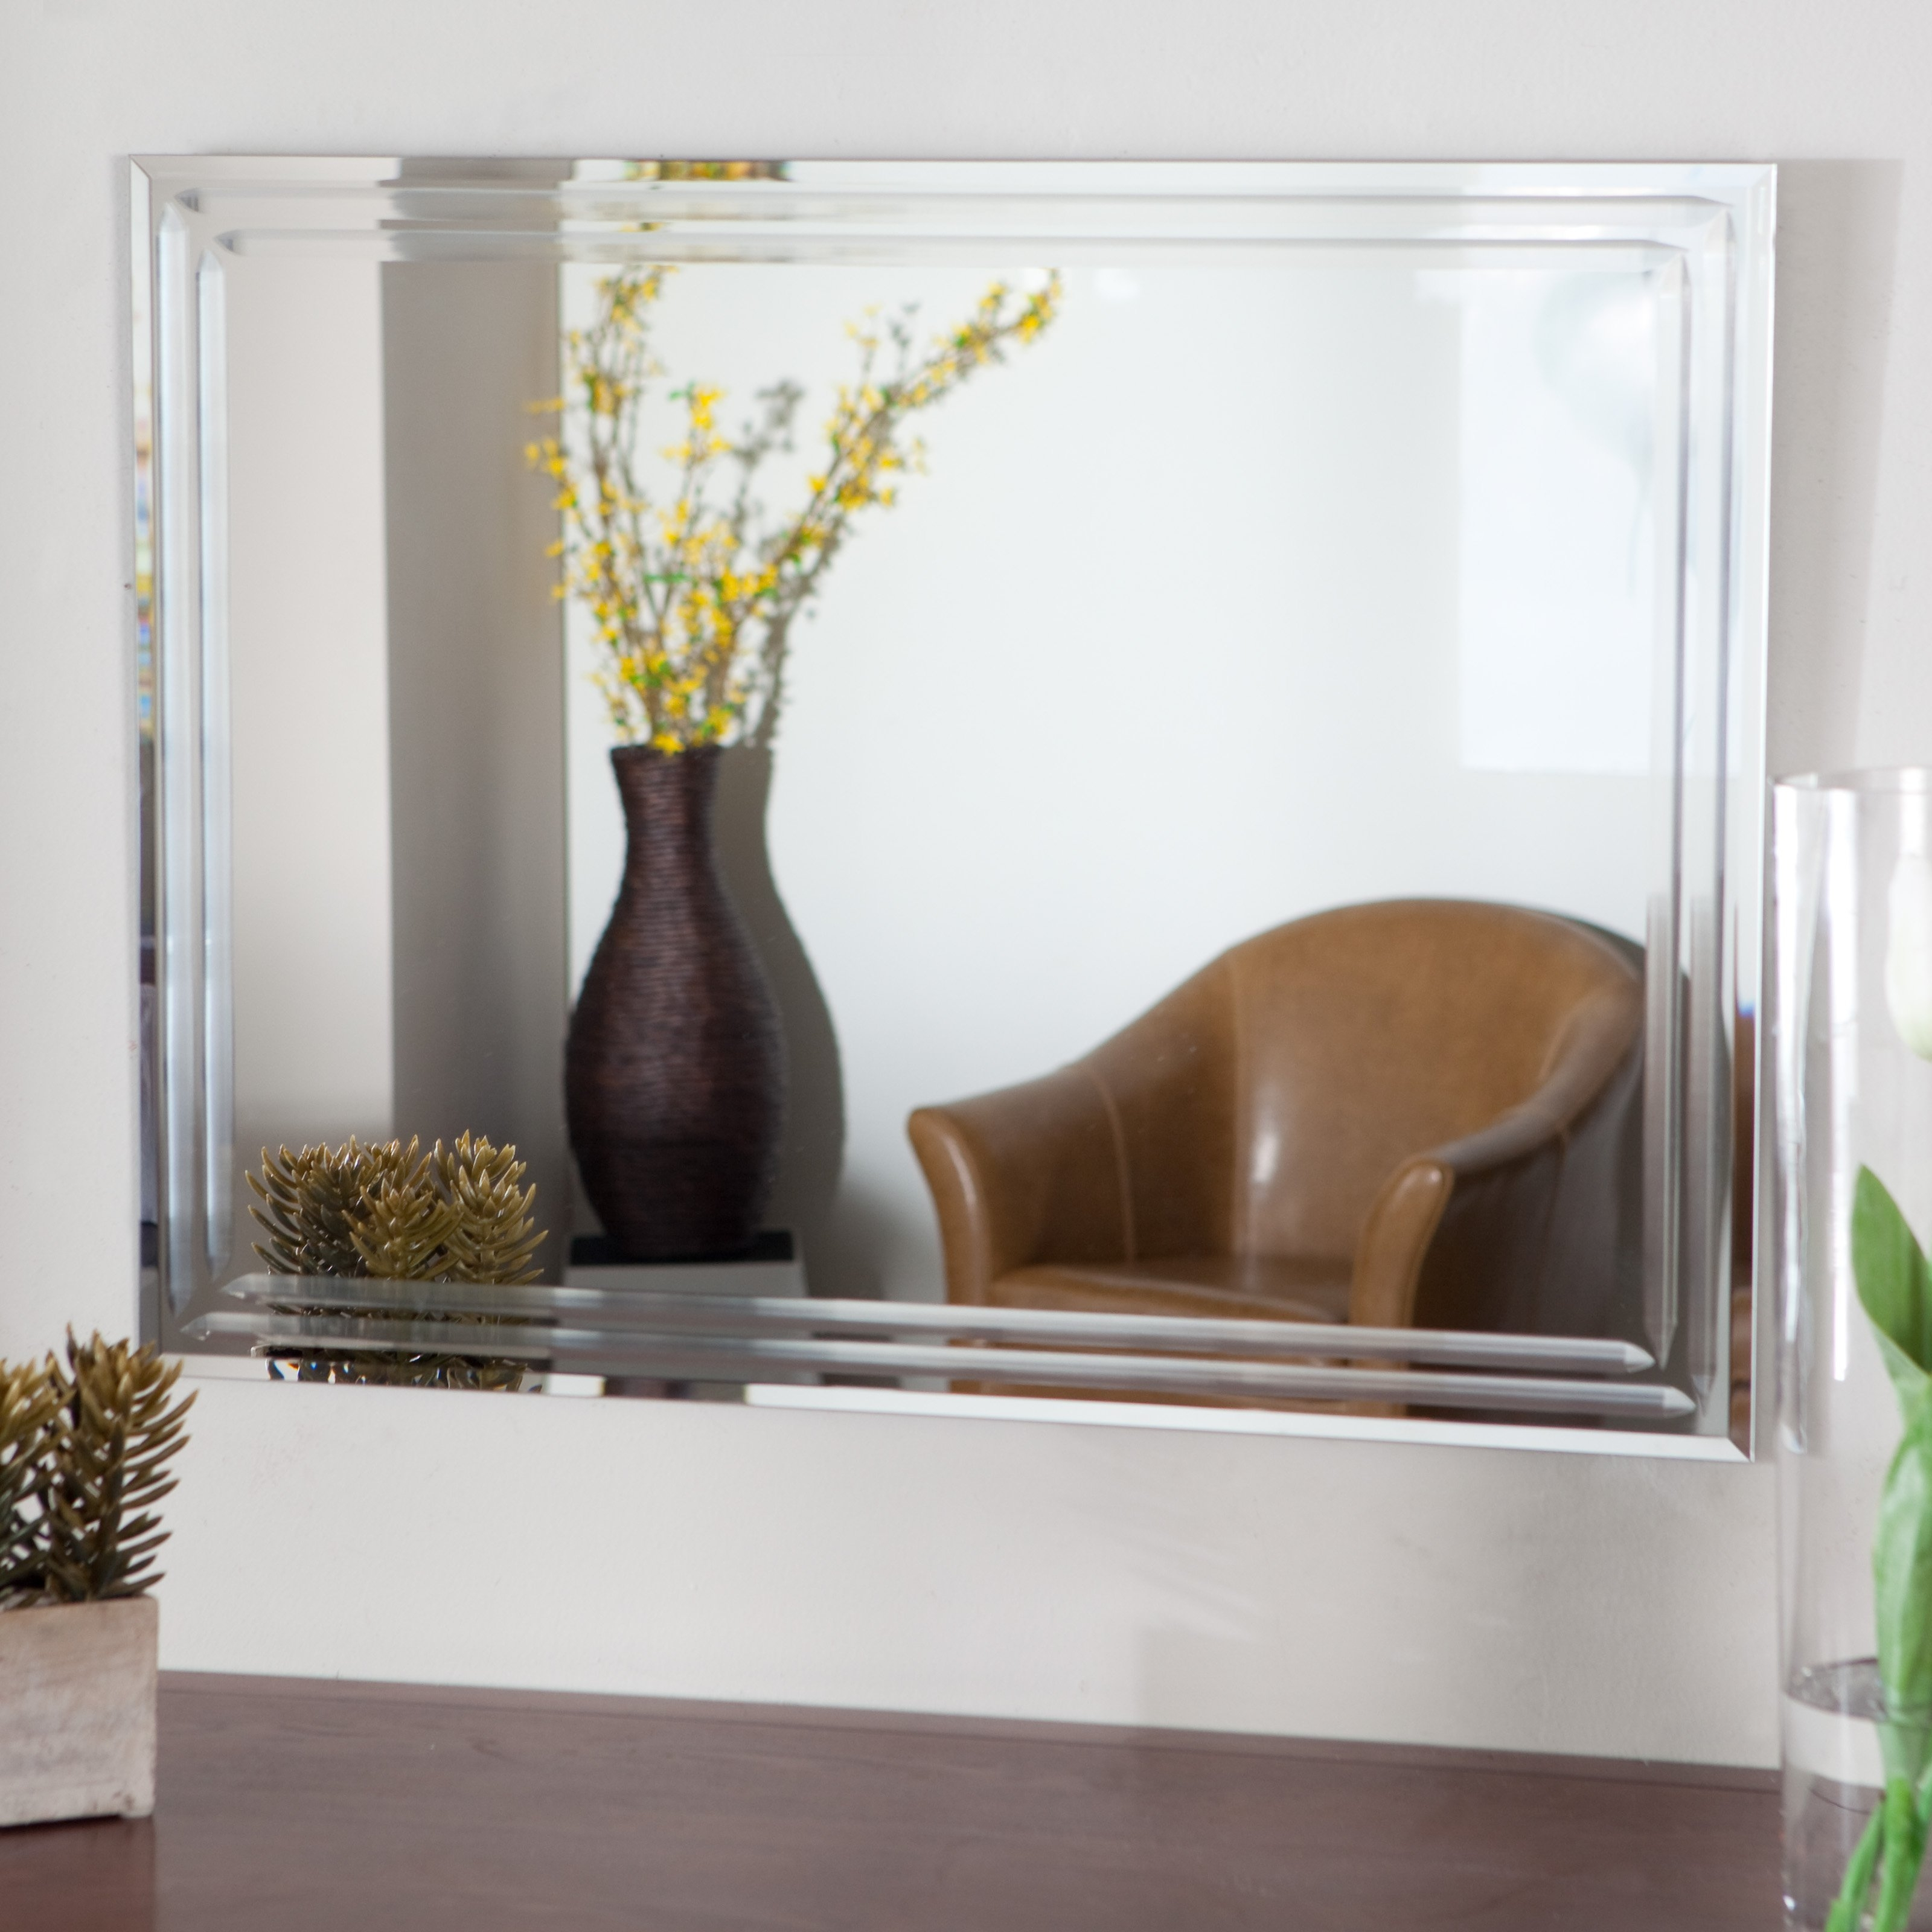 Marvelous Ideas Large Frameless Wall Mirrors Shining Modern Silver Regarding Frameless Large Wall Mirror (Image 11 of 15)